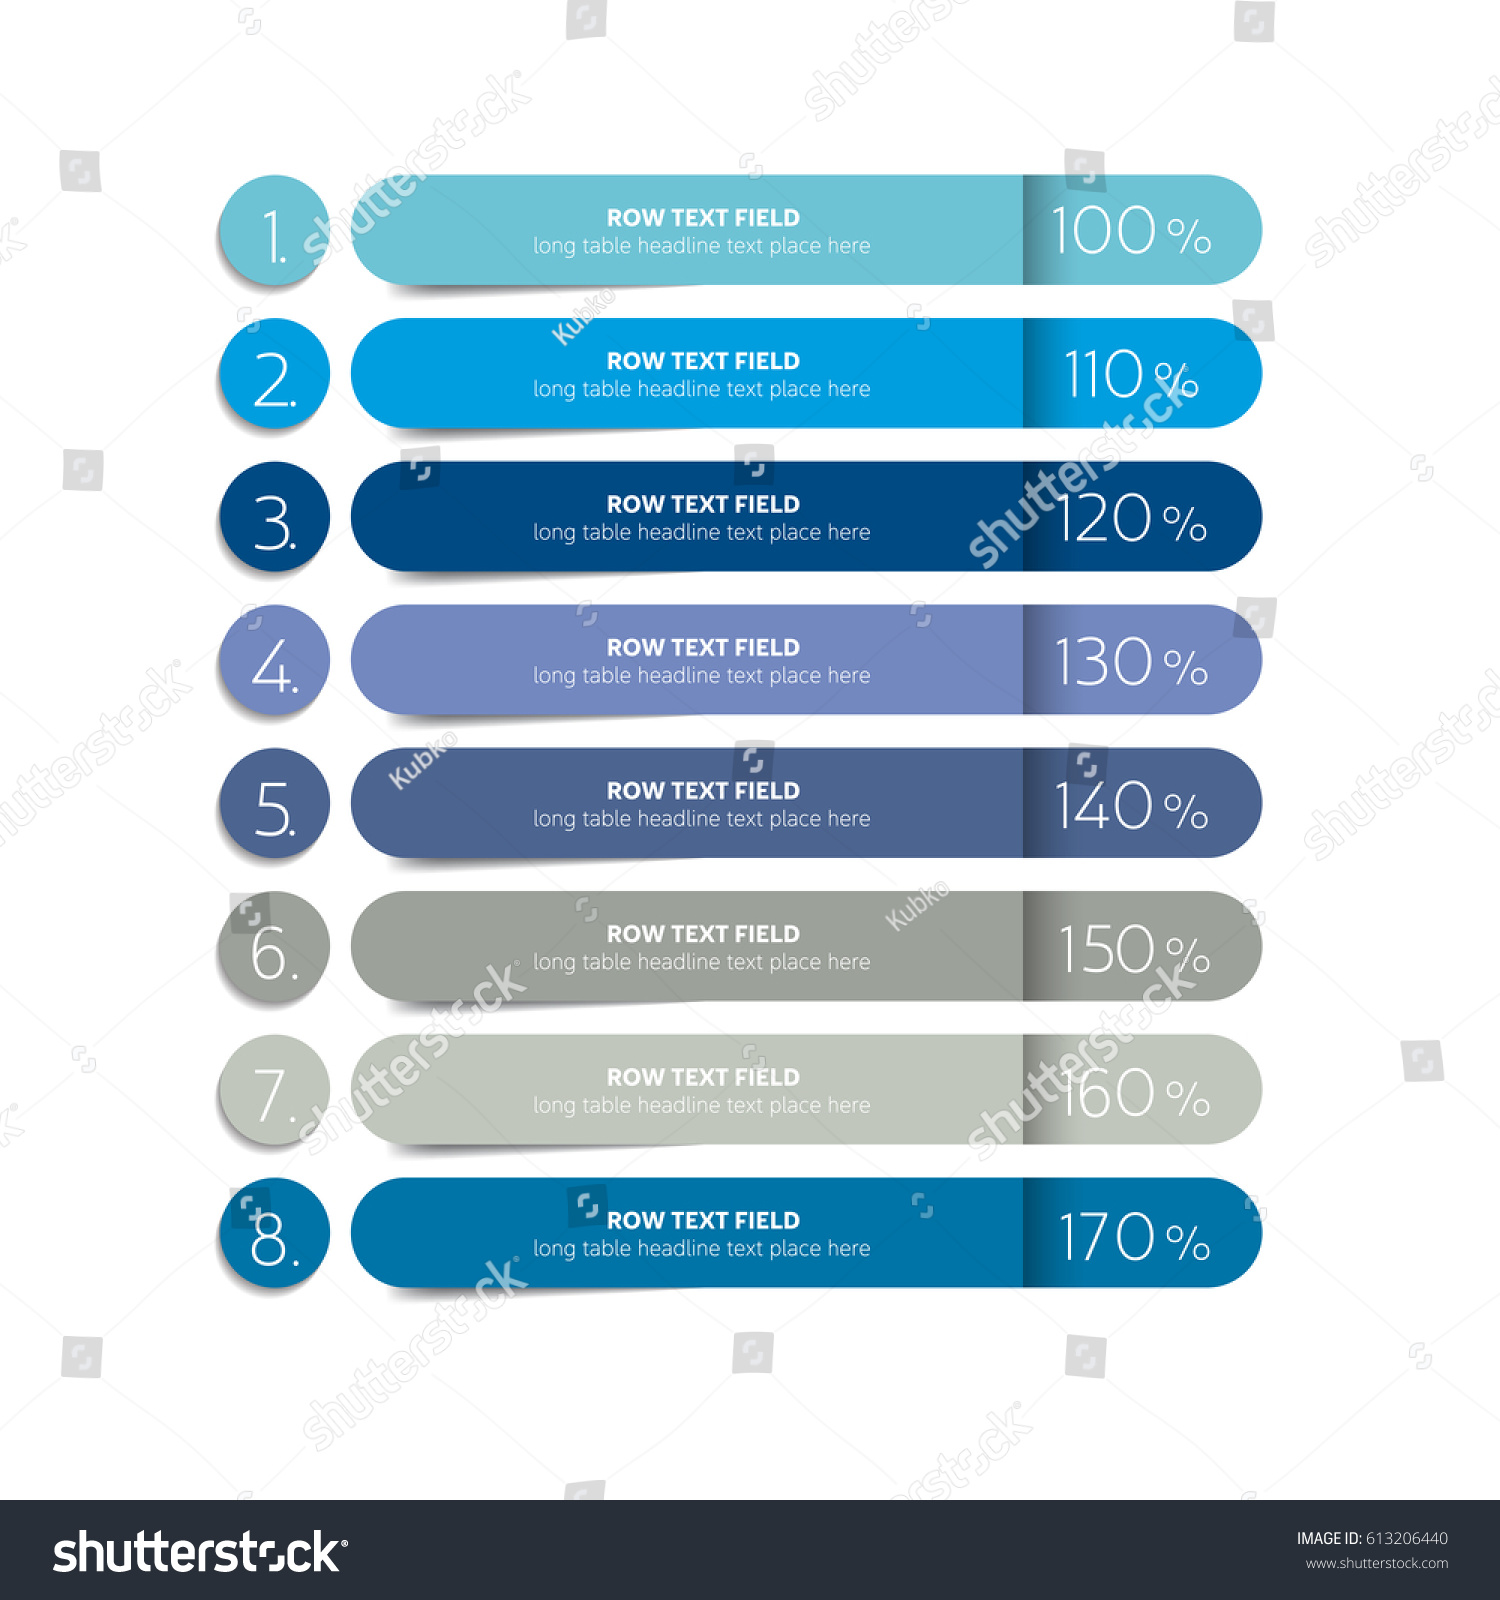 Table schedule design template 8 row stock vector for Table design template